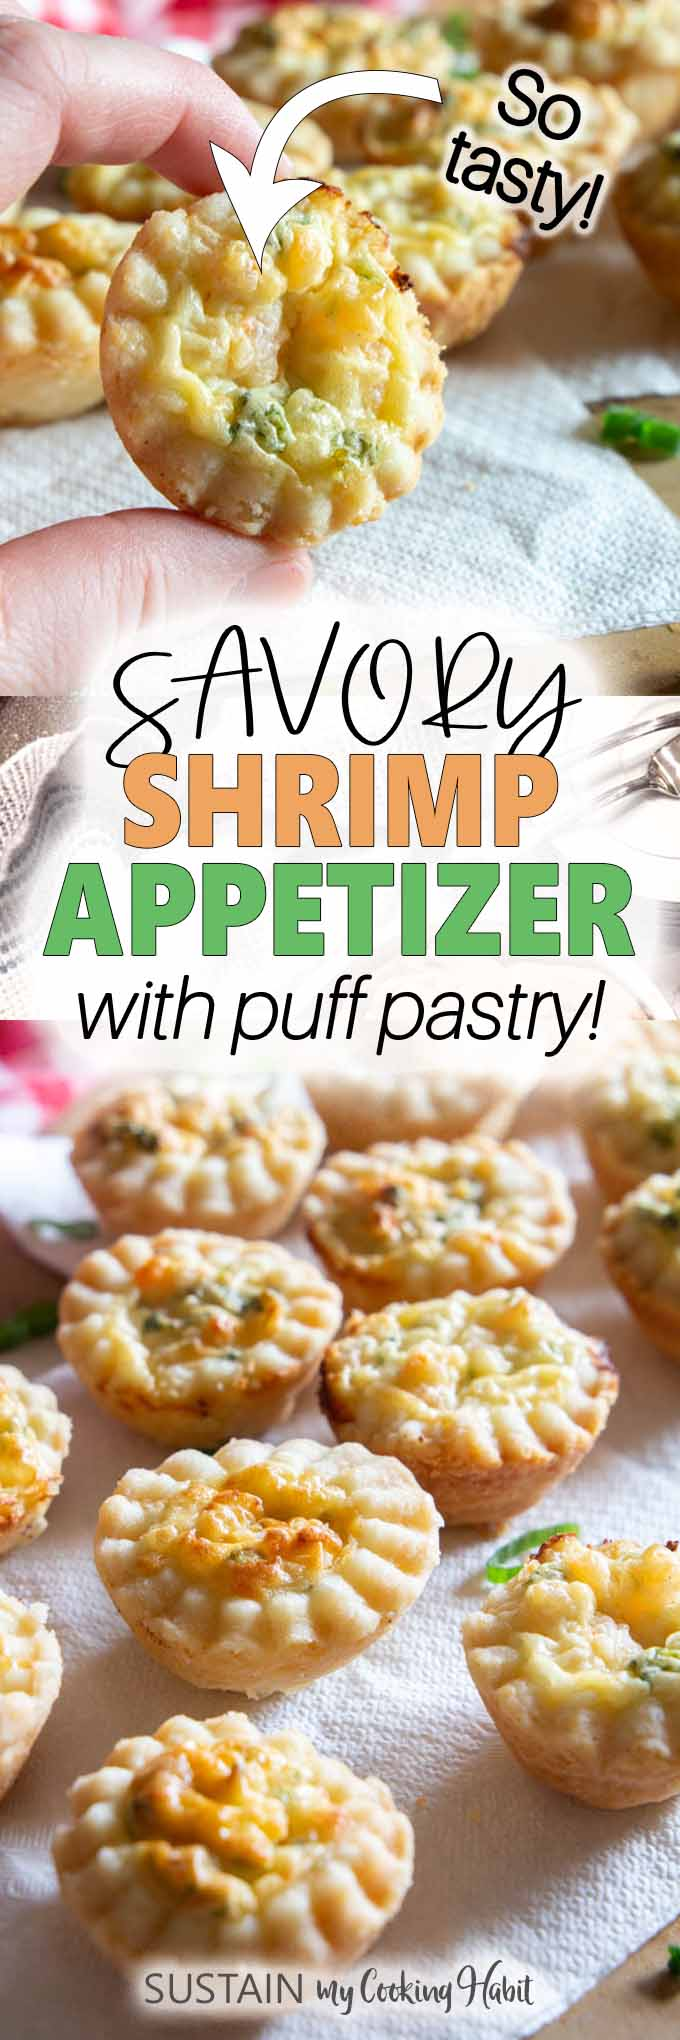 pinnable image for savory shrimp puff pastry